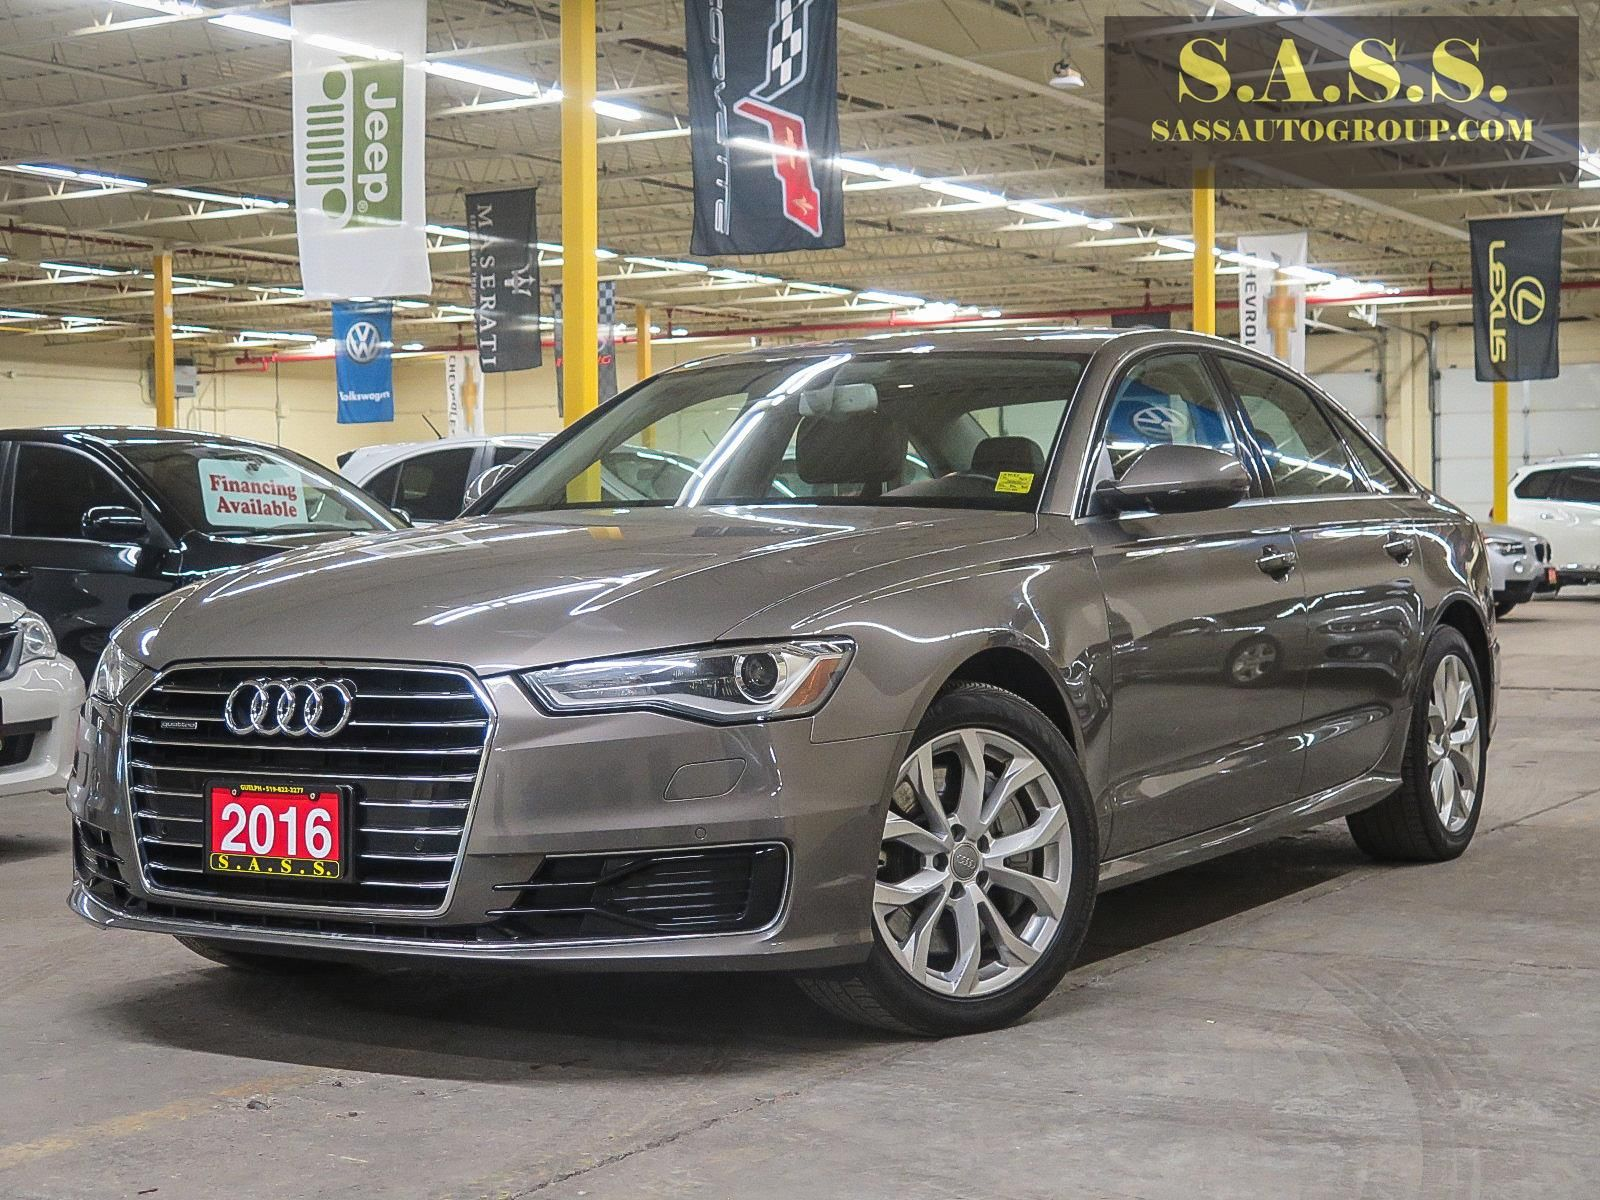 Guelph Auto Mall >> Large Passenger Sedan With A Beautiful Interior And Exterior